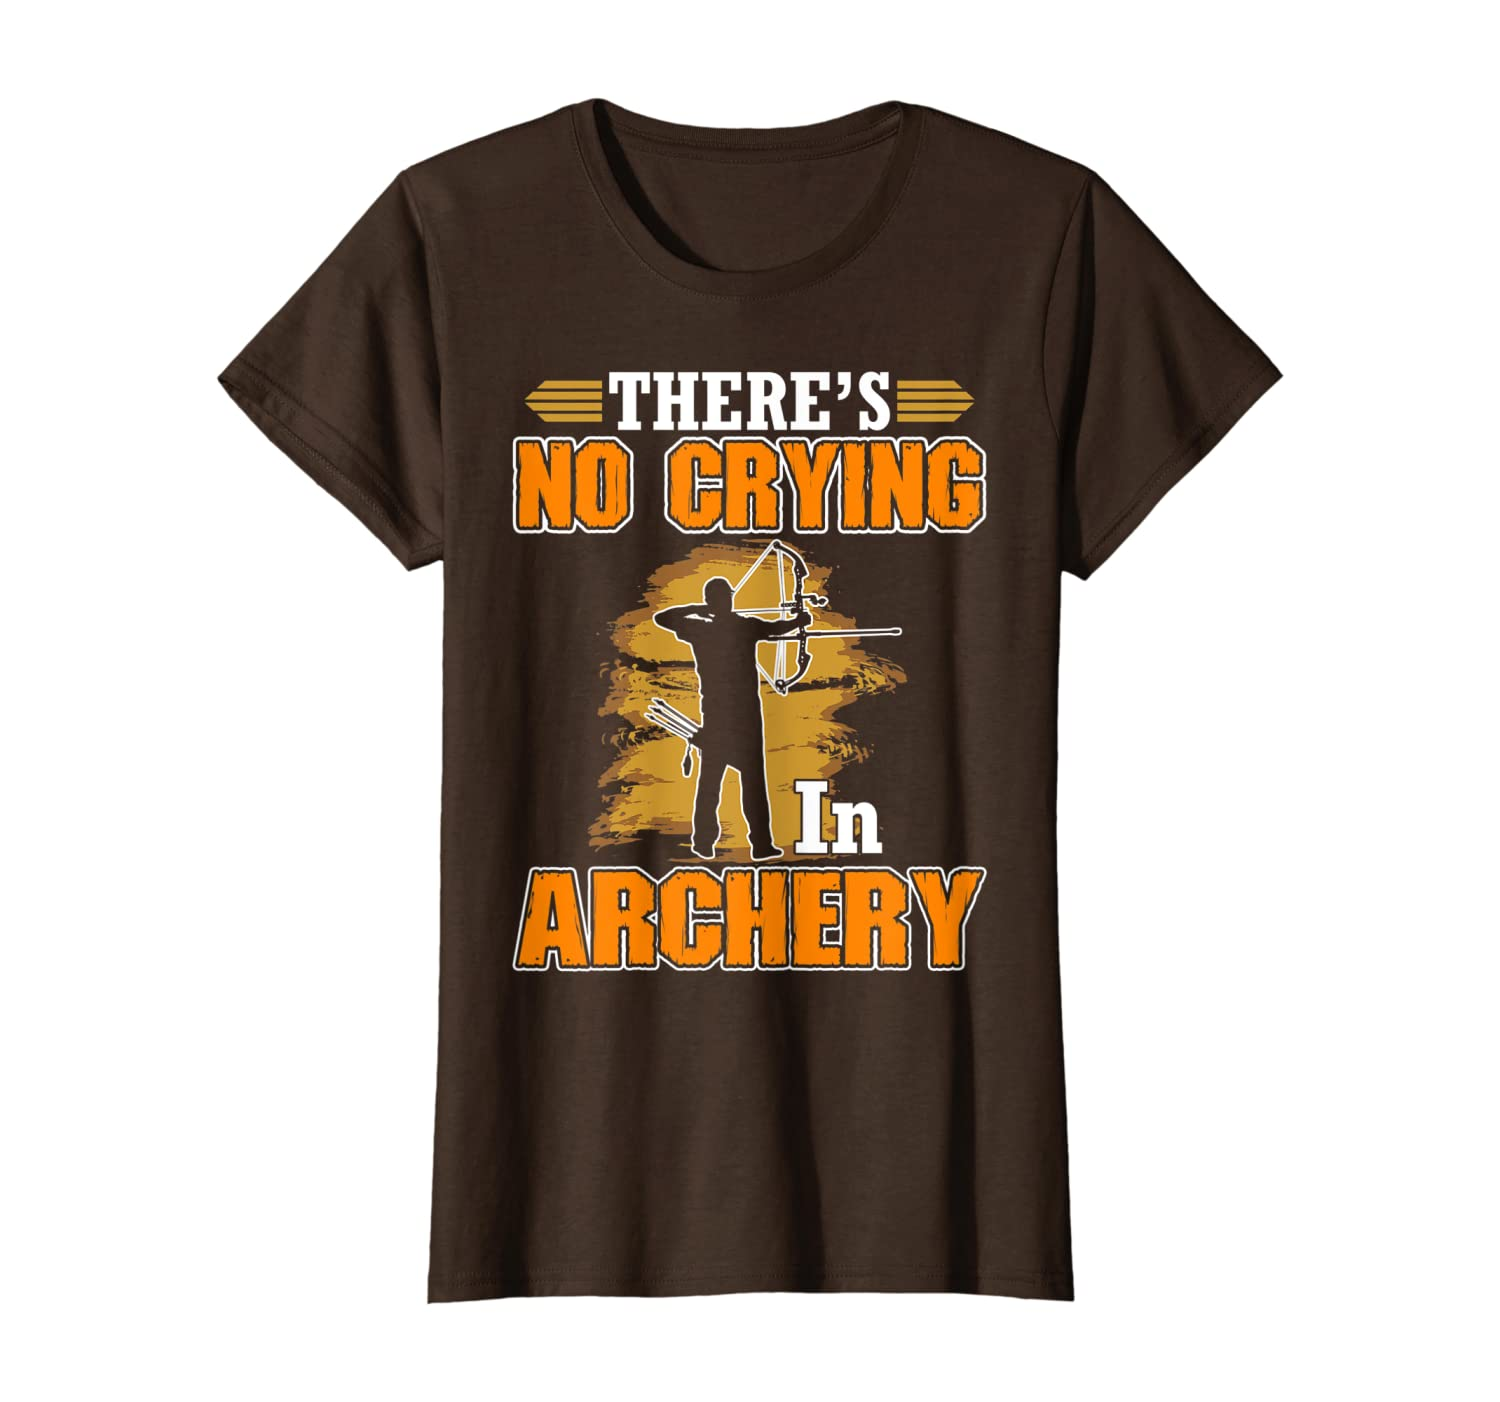 There's No Crying In Archery T shirt